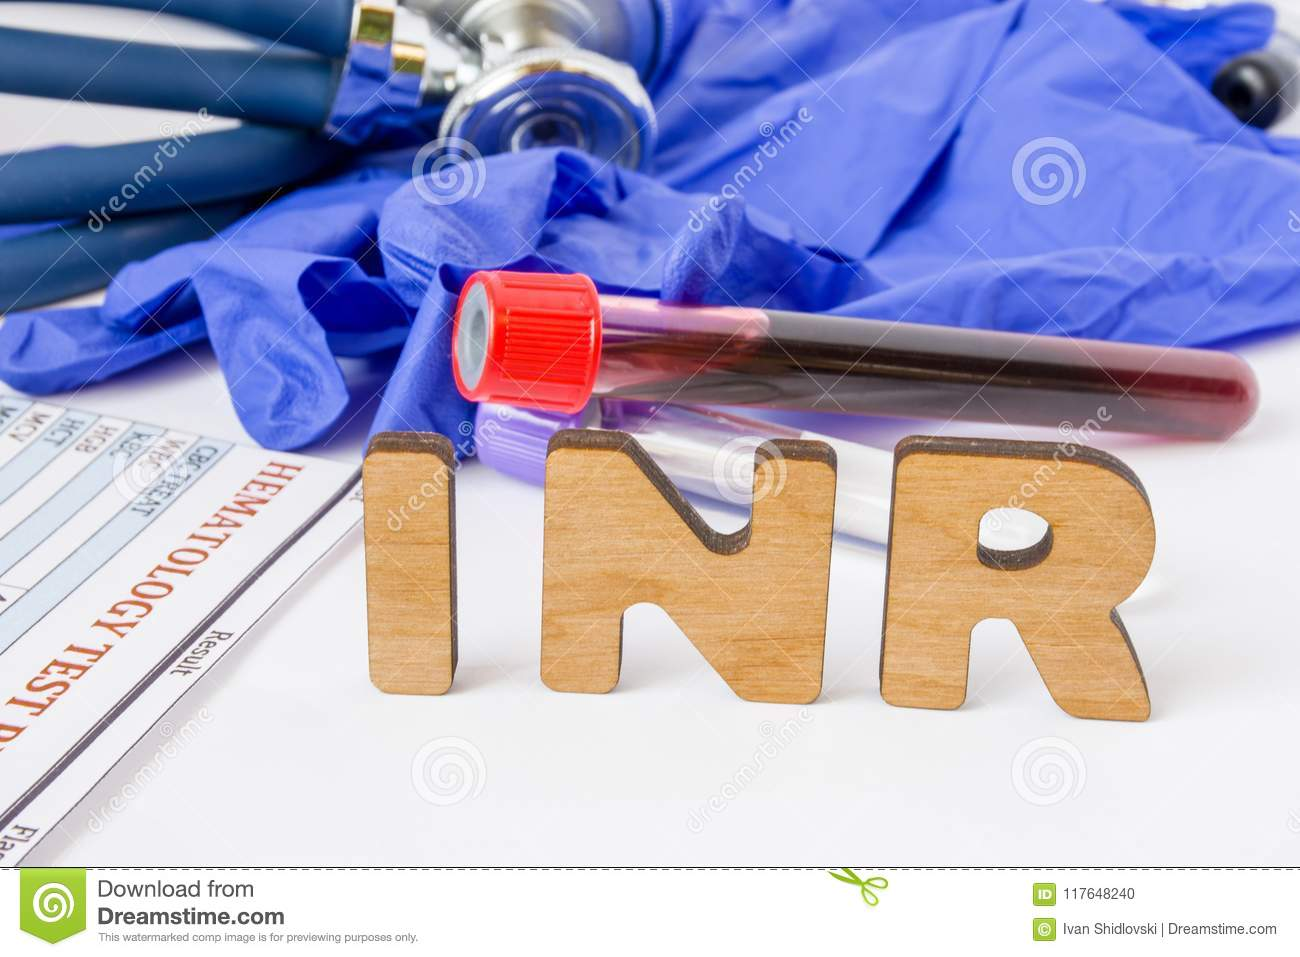 INR Clinical laboratory medical acronym or abbreviation of prothrombin time, blood test for clotting time. Word INR are near labor